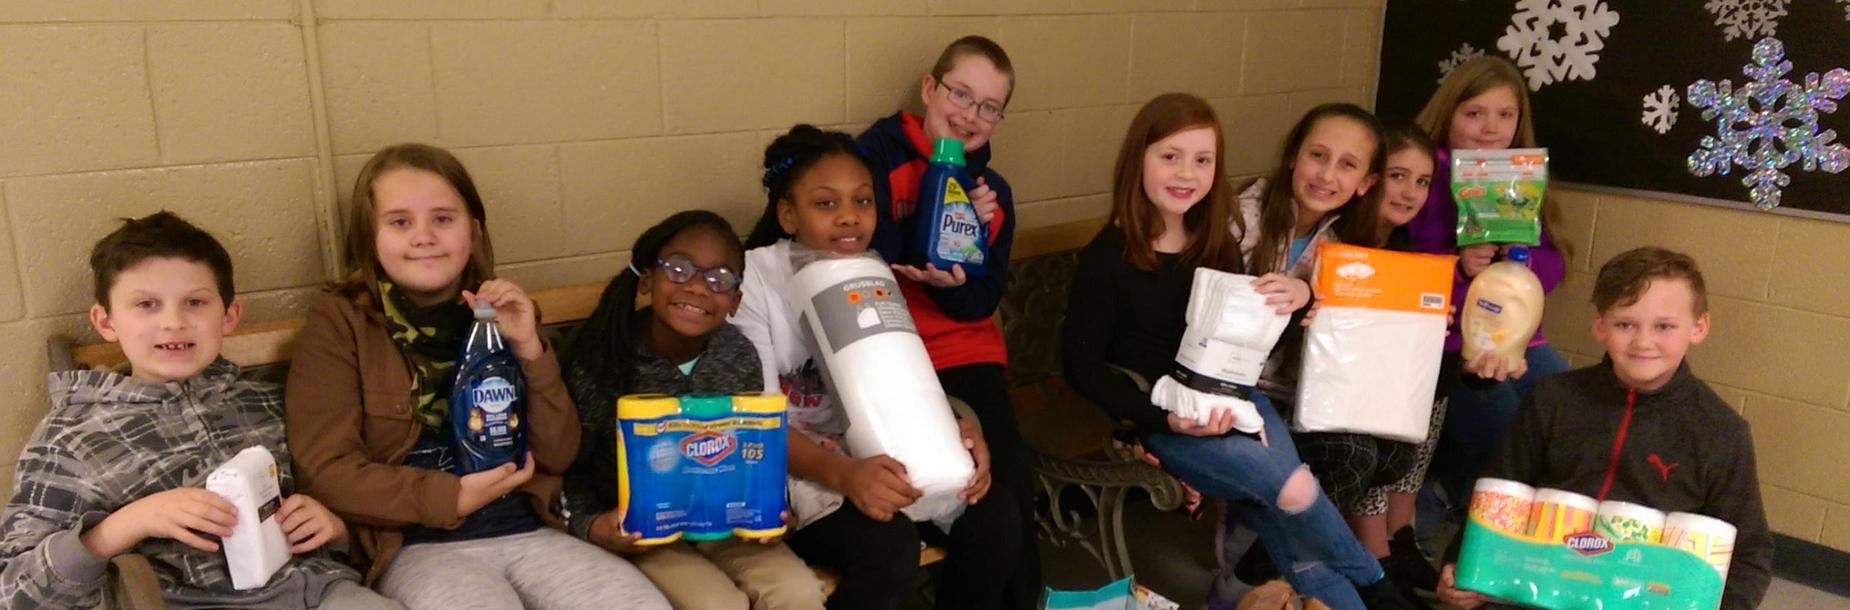 Photo of junior beta club students at South Columbia Elementary School, holding supplies like paper towels, towels, toilet paper, laundry detergent and other items they collected to donate to the Ronald McDonald House.